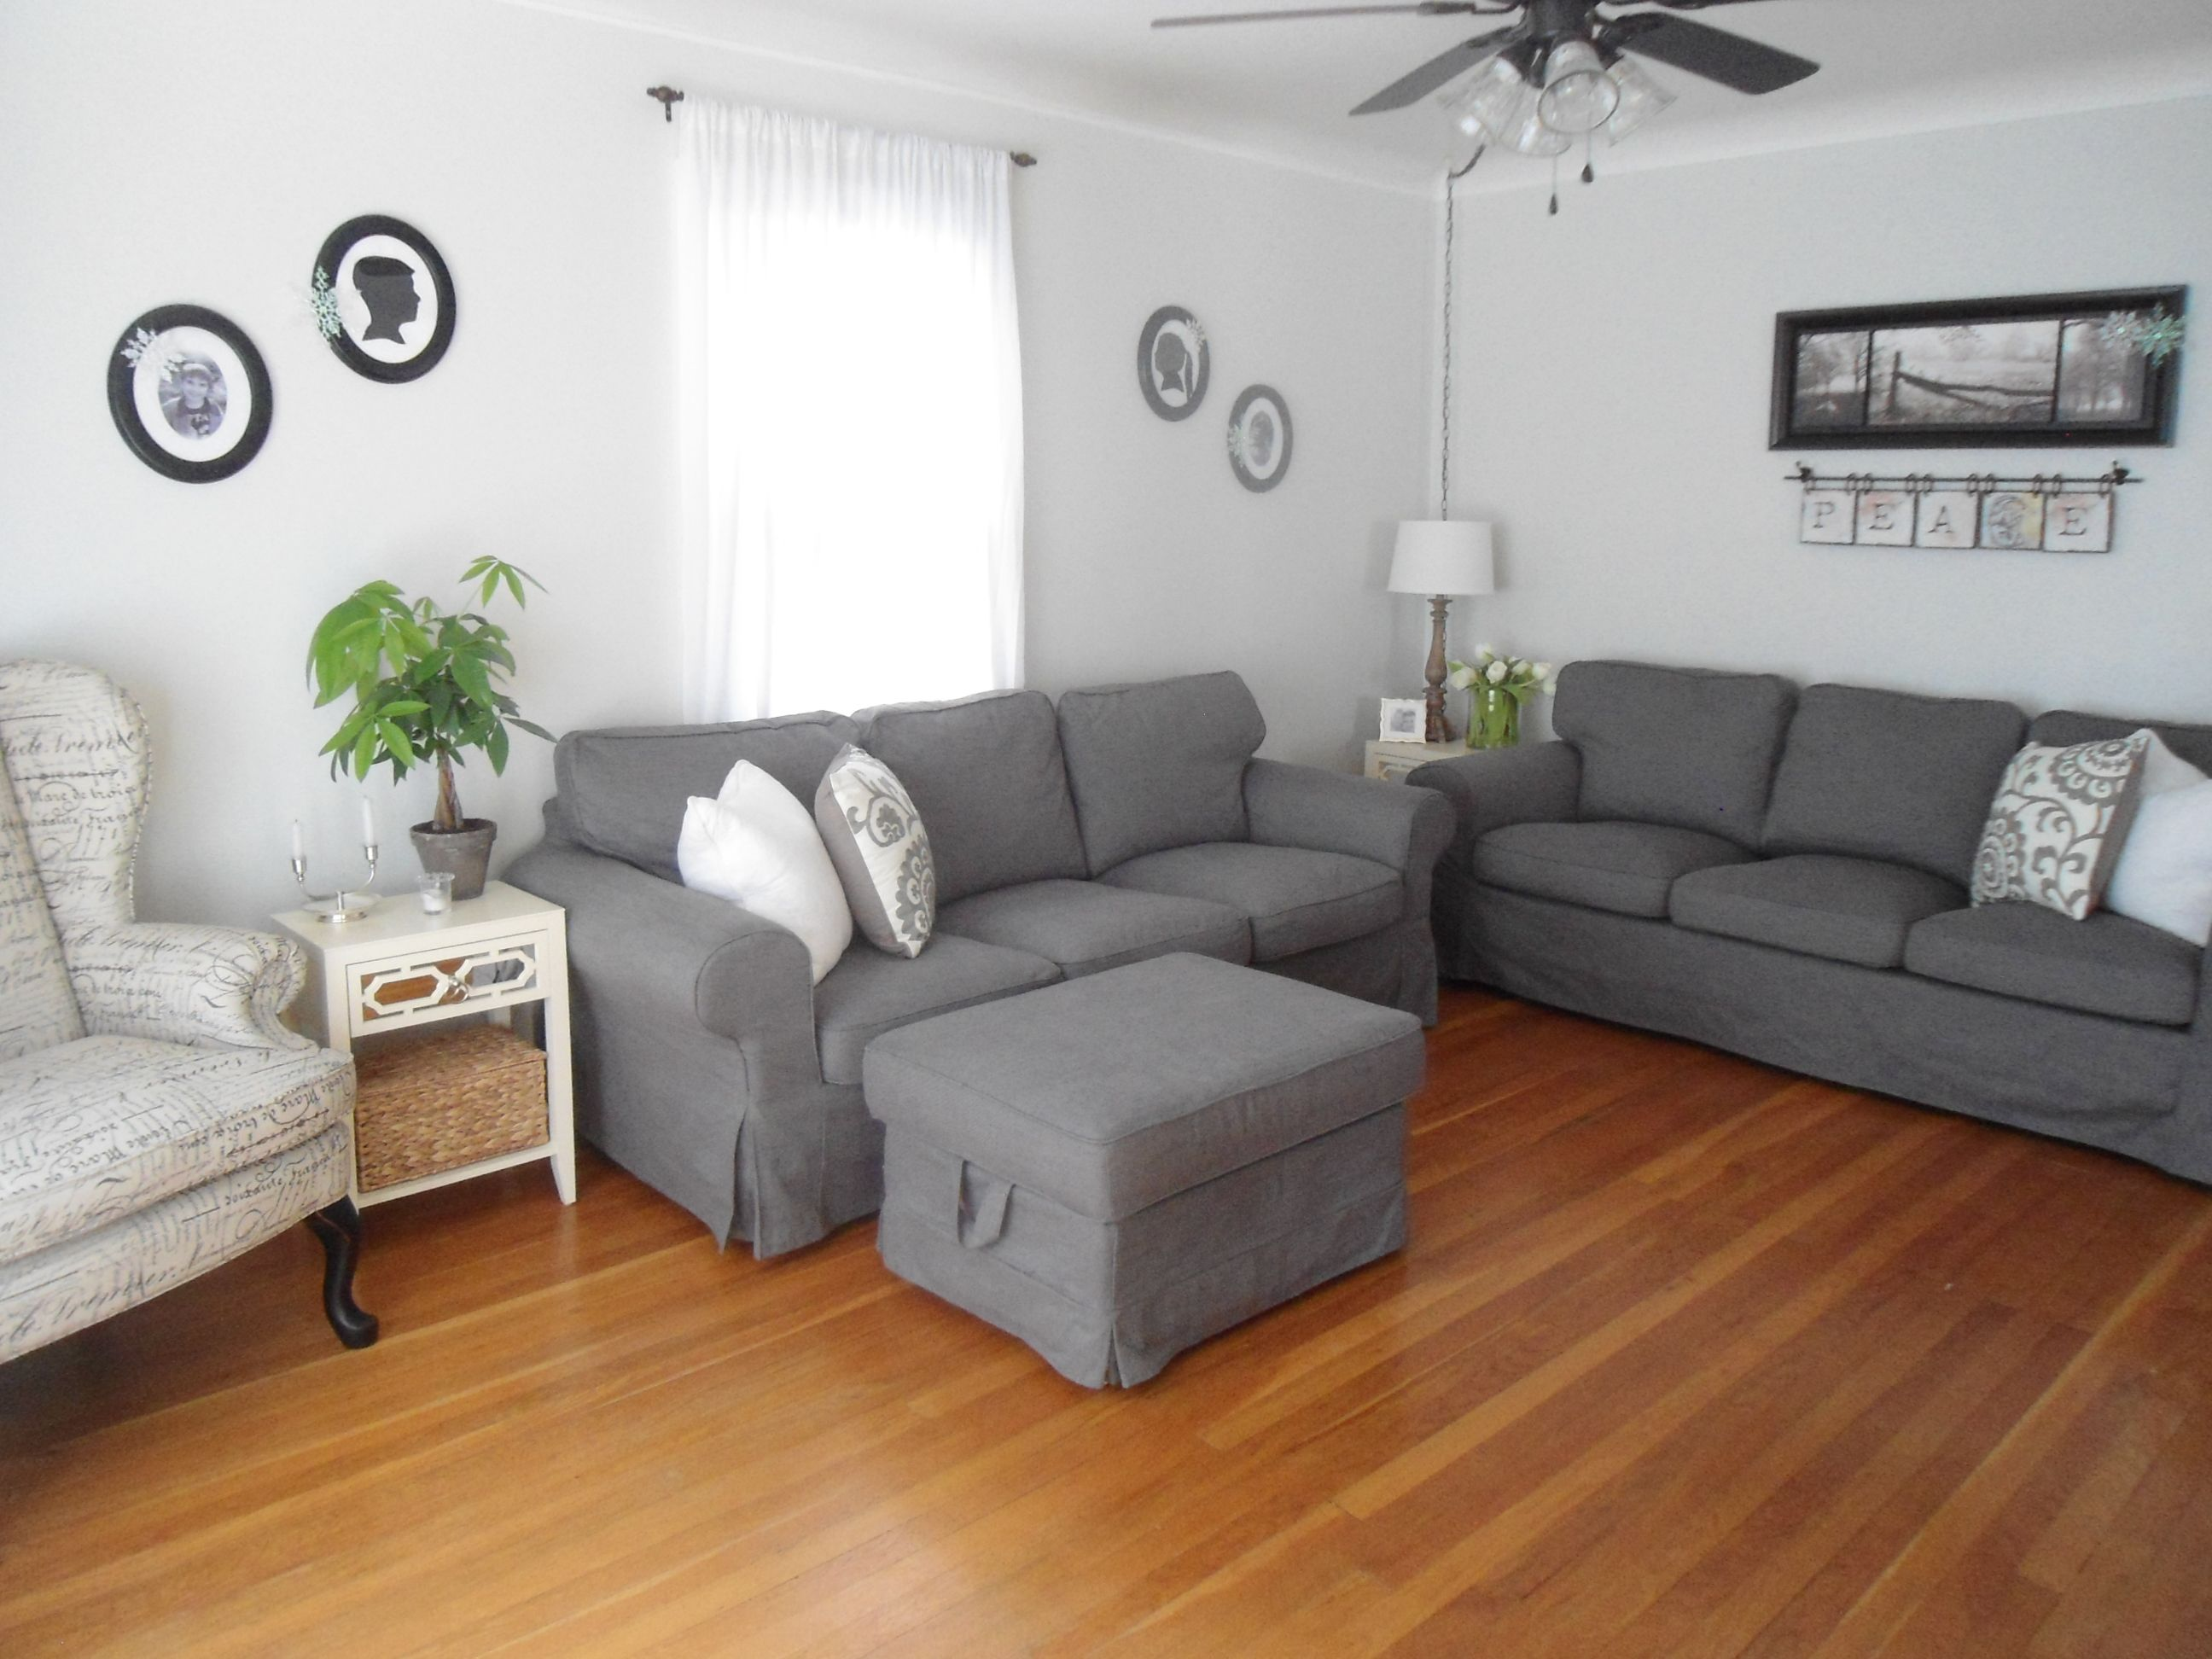 Neutral living room paint color benjamin moore gray owl - Grey paint living room ...